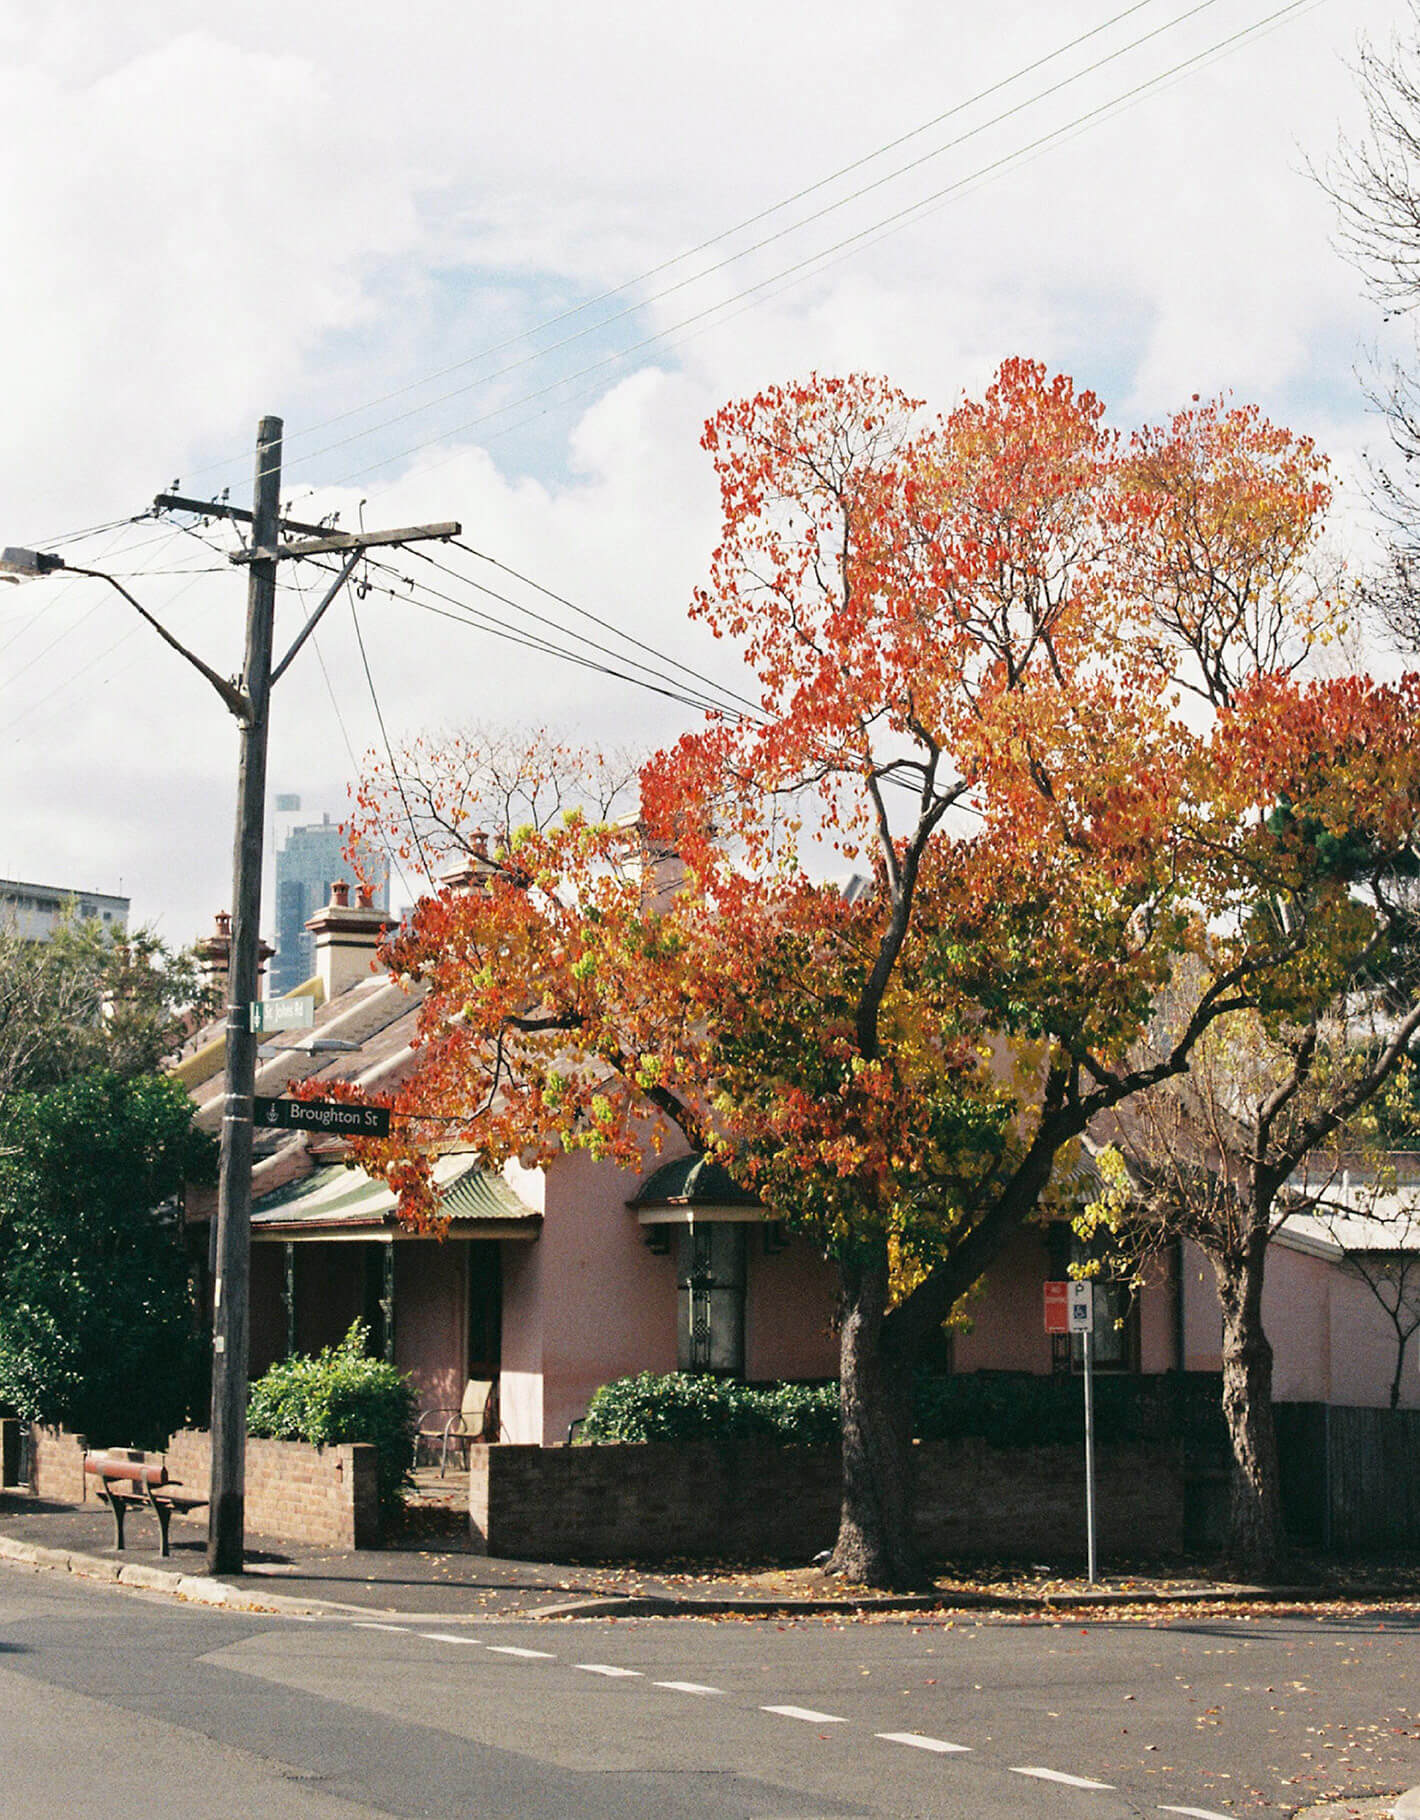 Flame tree blooming on Sydney street with delicate film photography grain